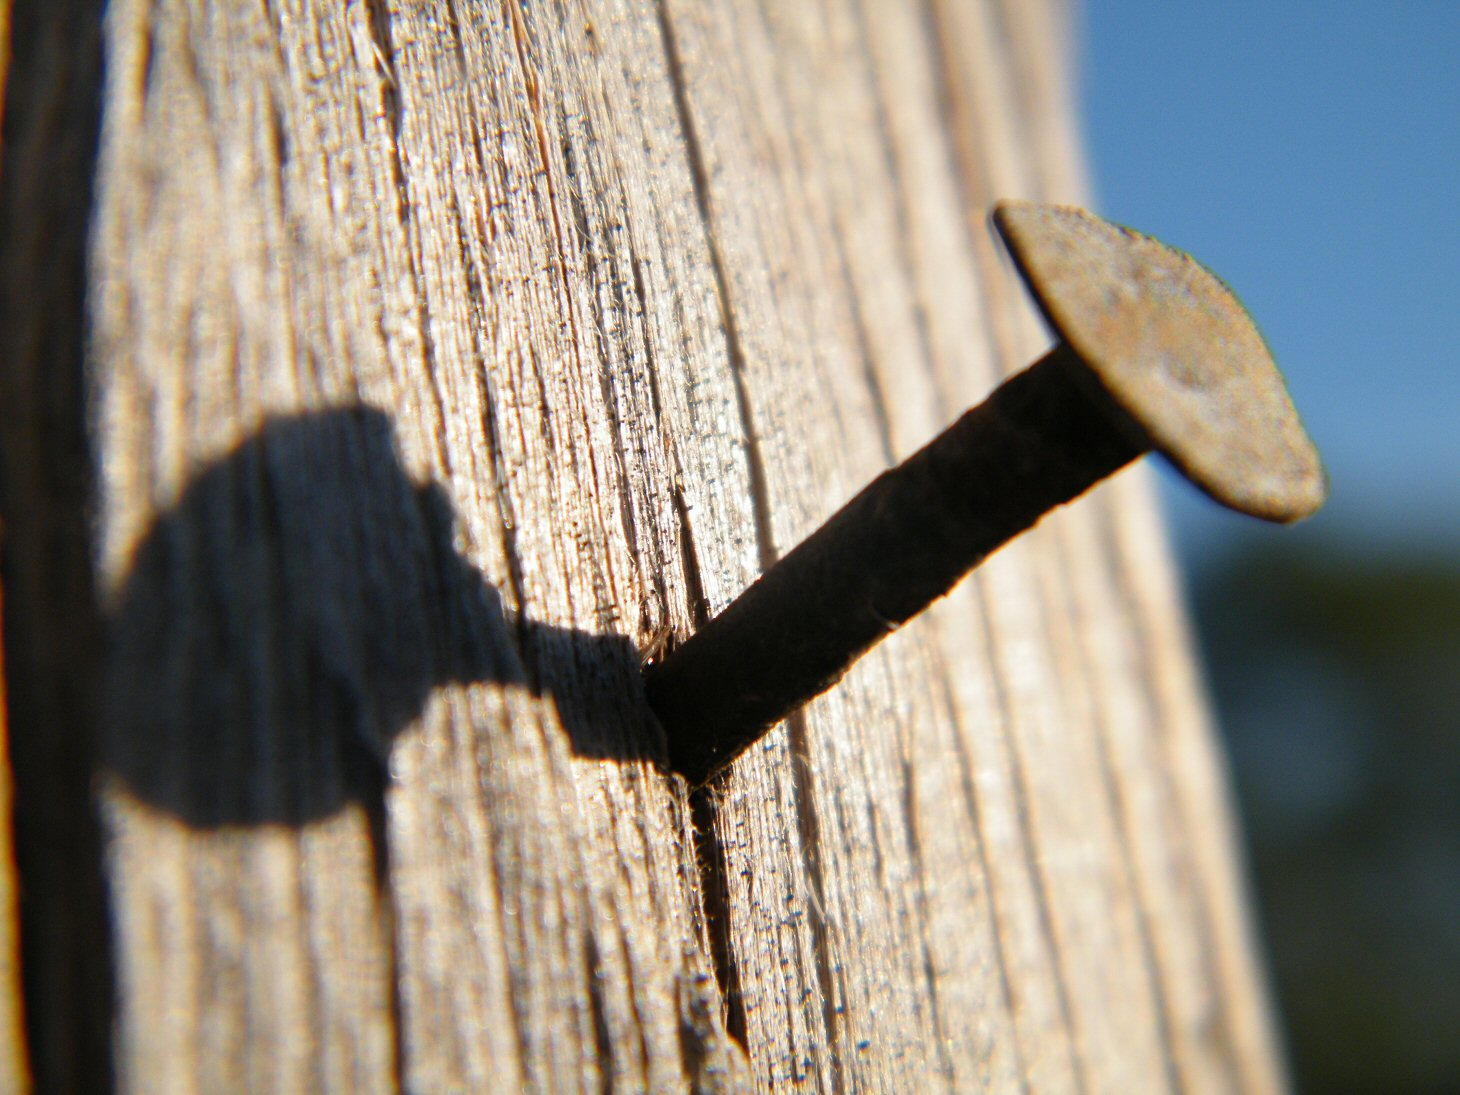 Macro Nail in the Wood